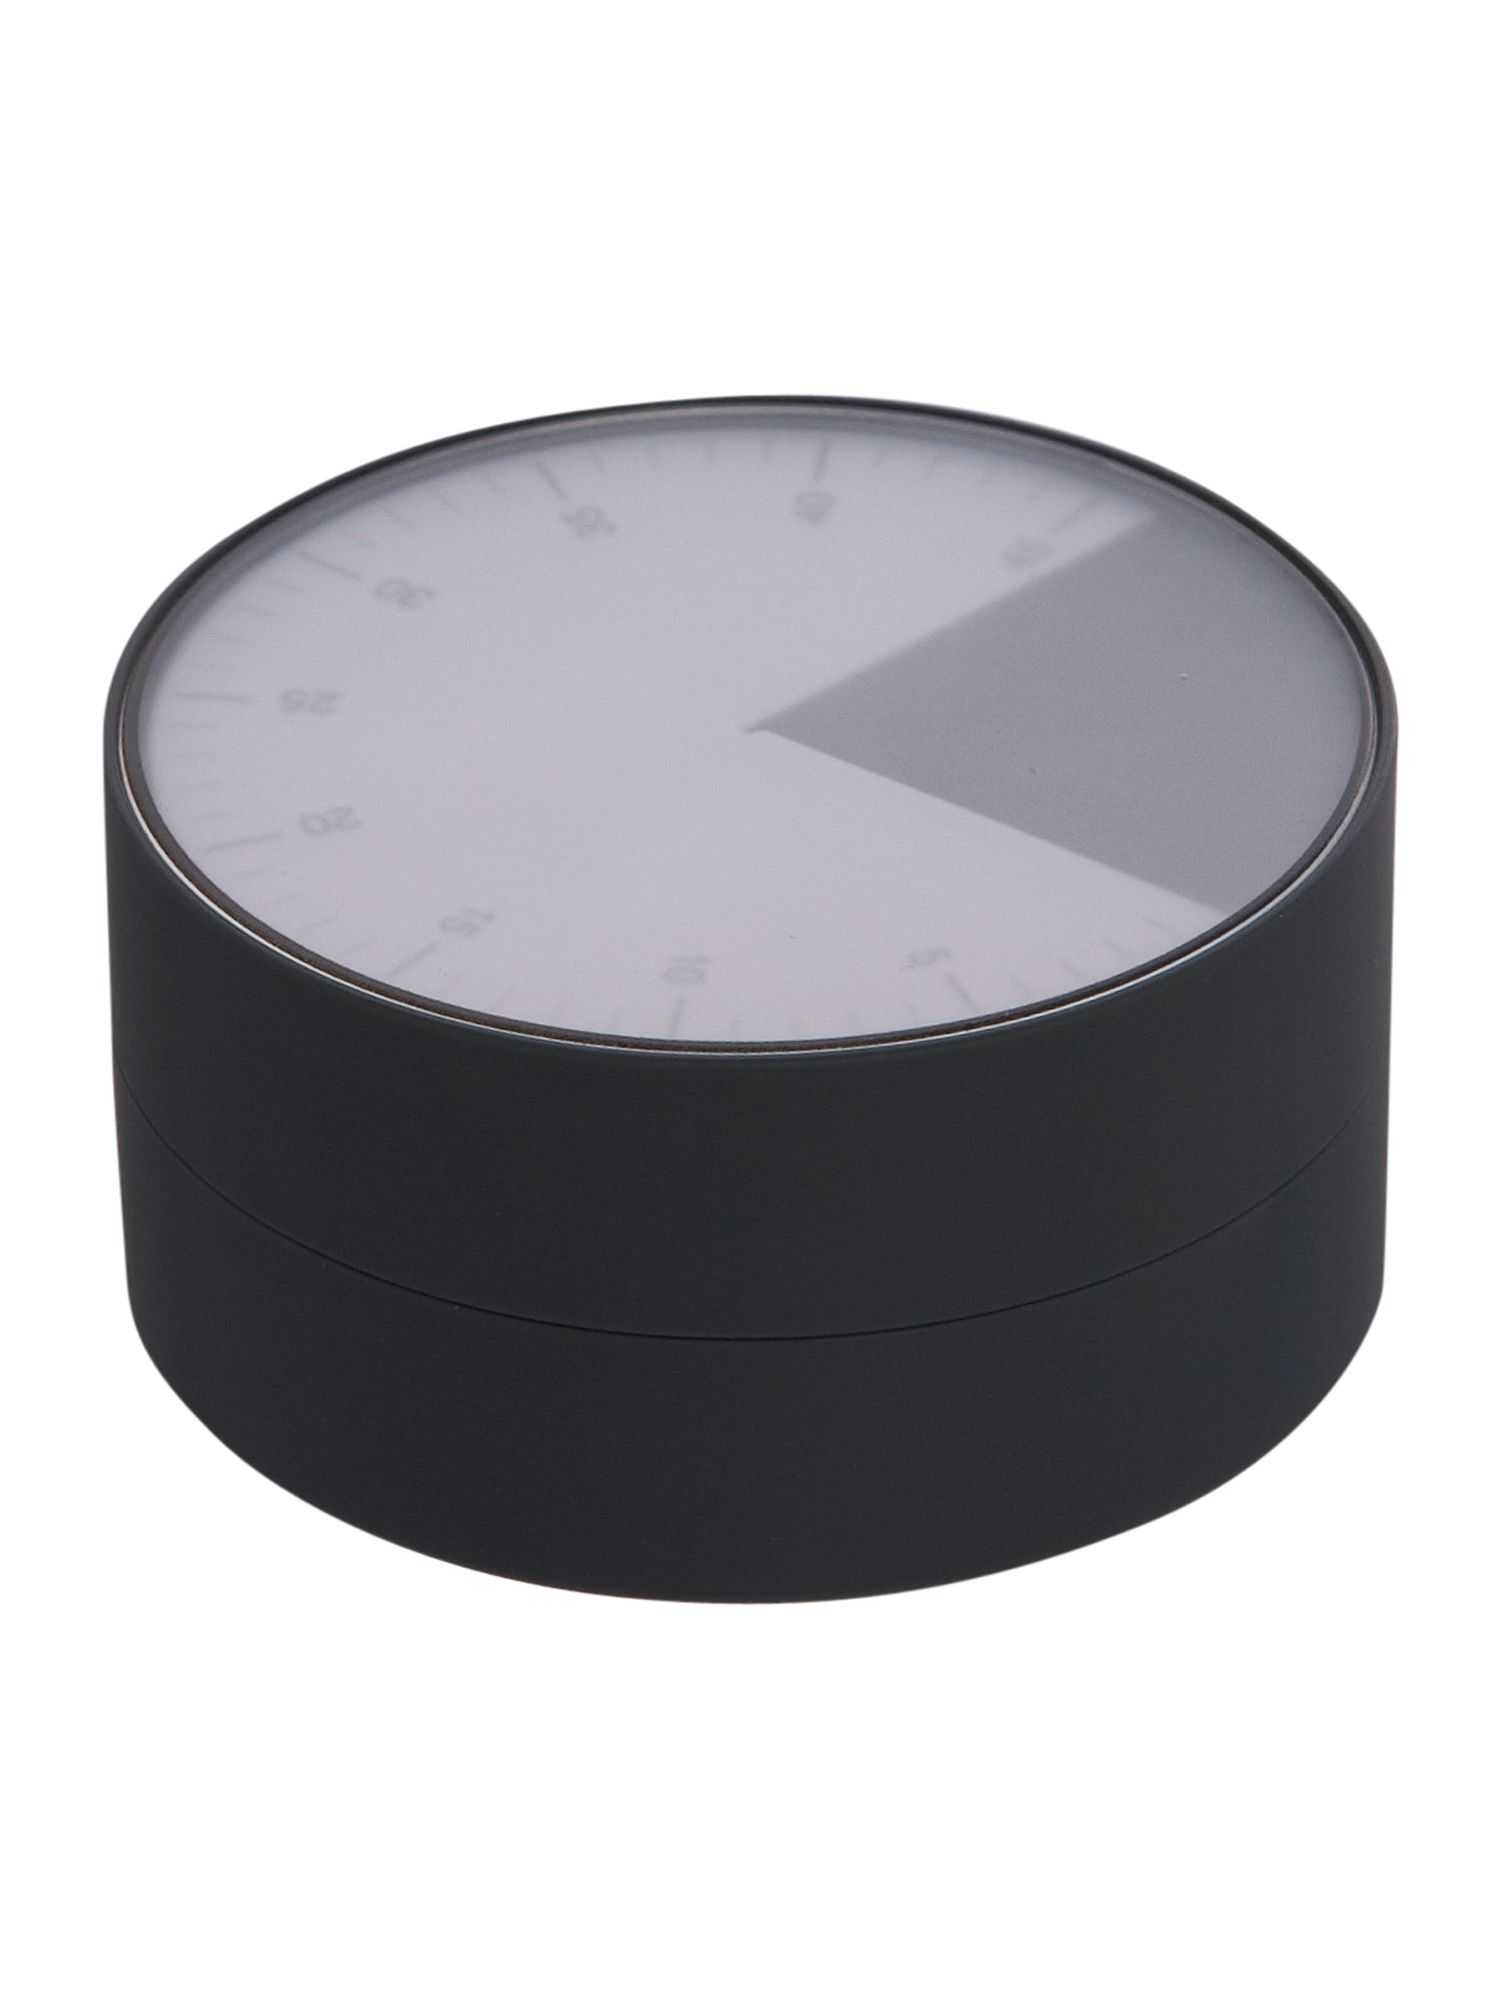 Pie kitchen timer